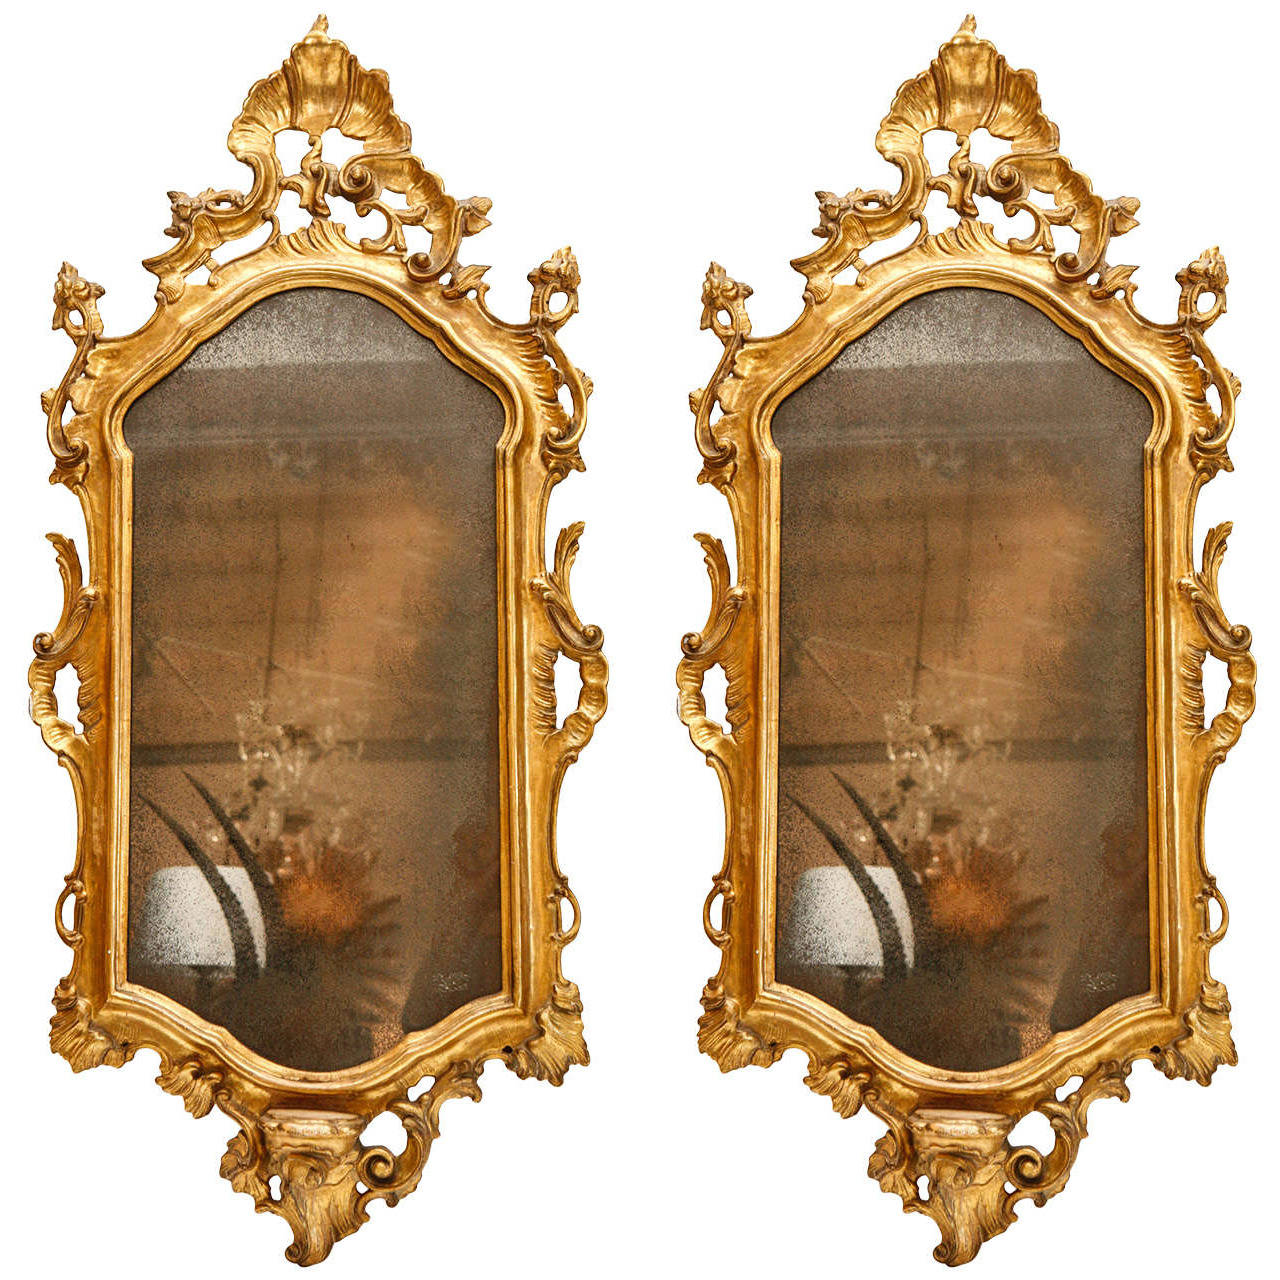 Pair of Italian, 19th c., Giltwood Mirrors